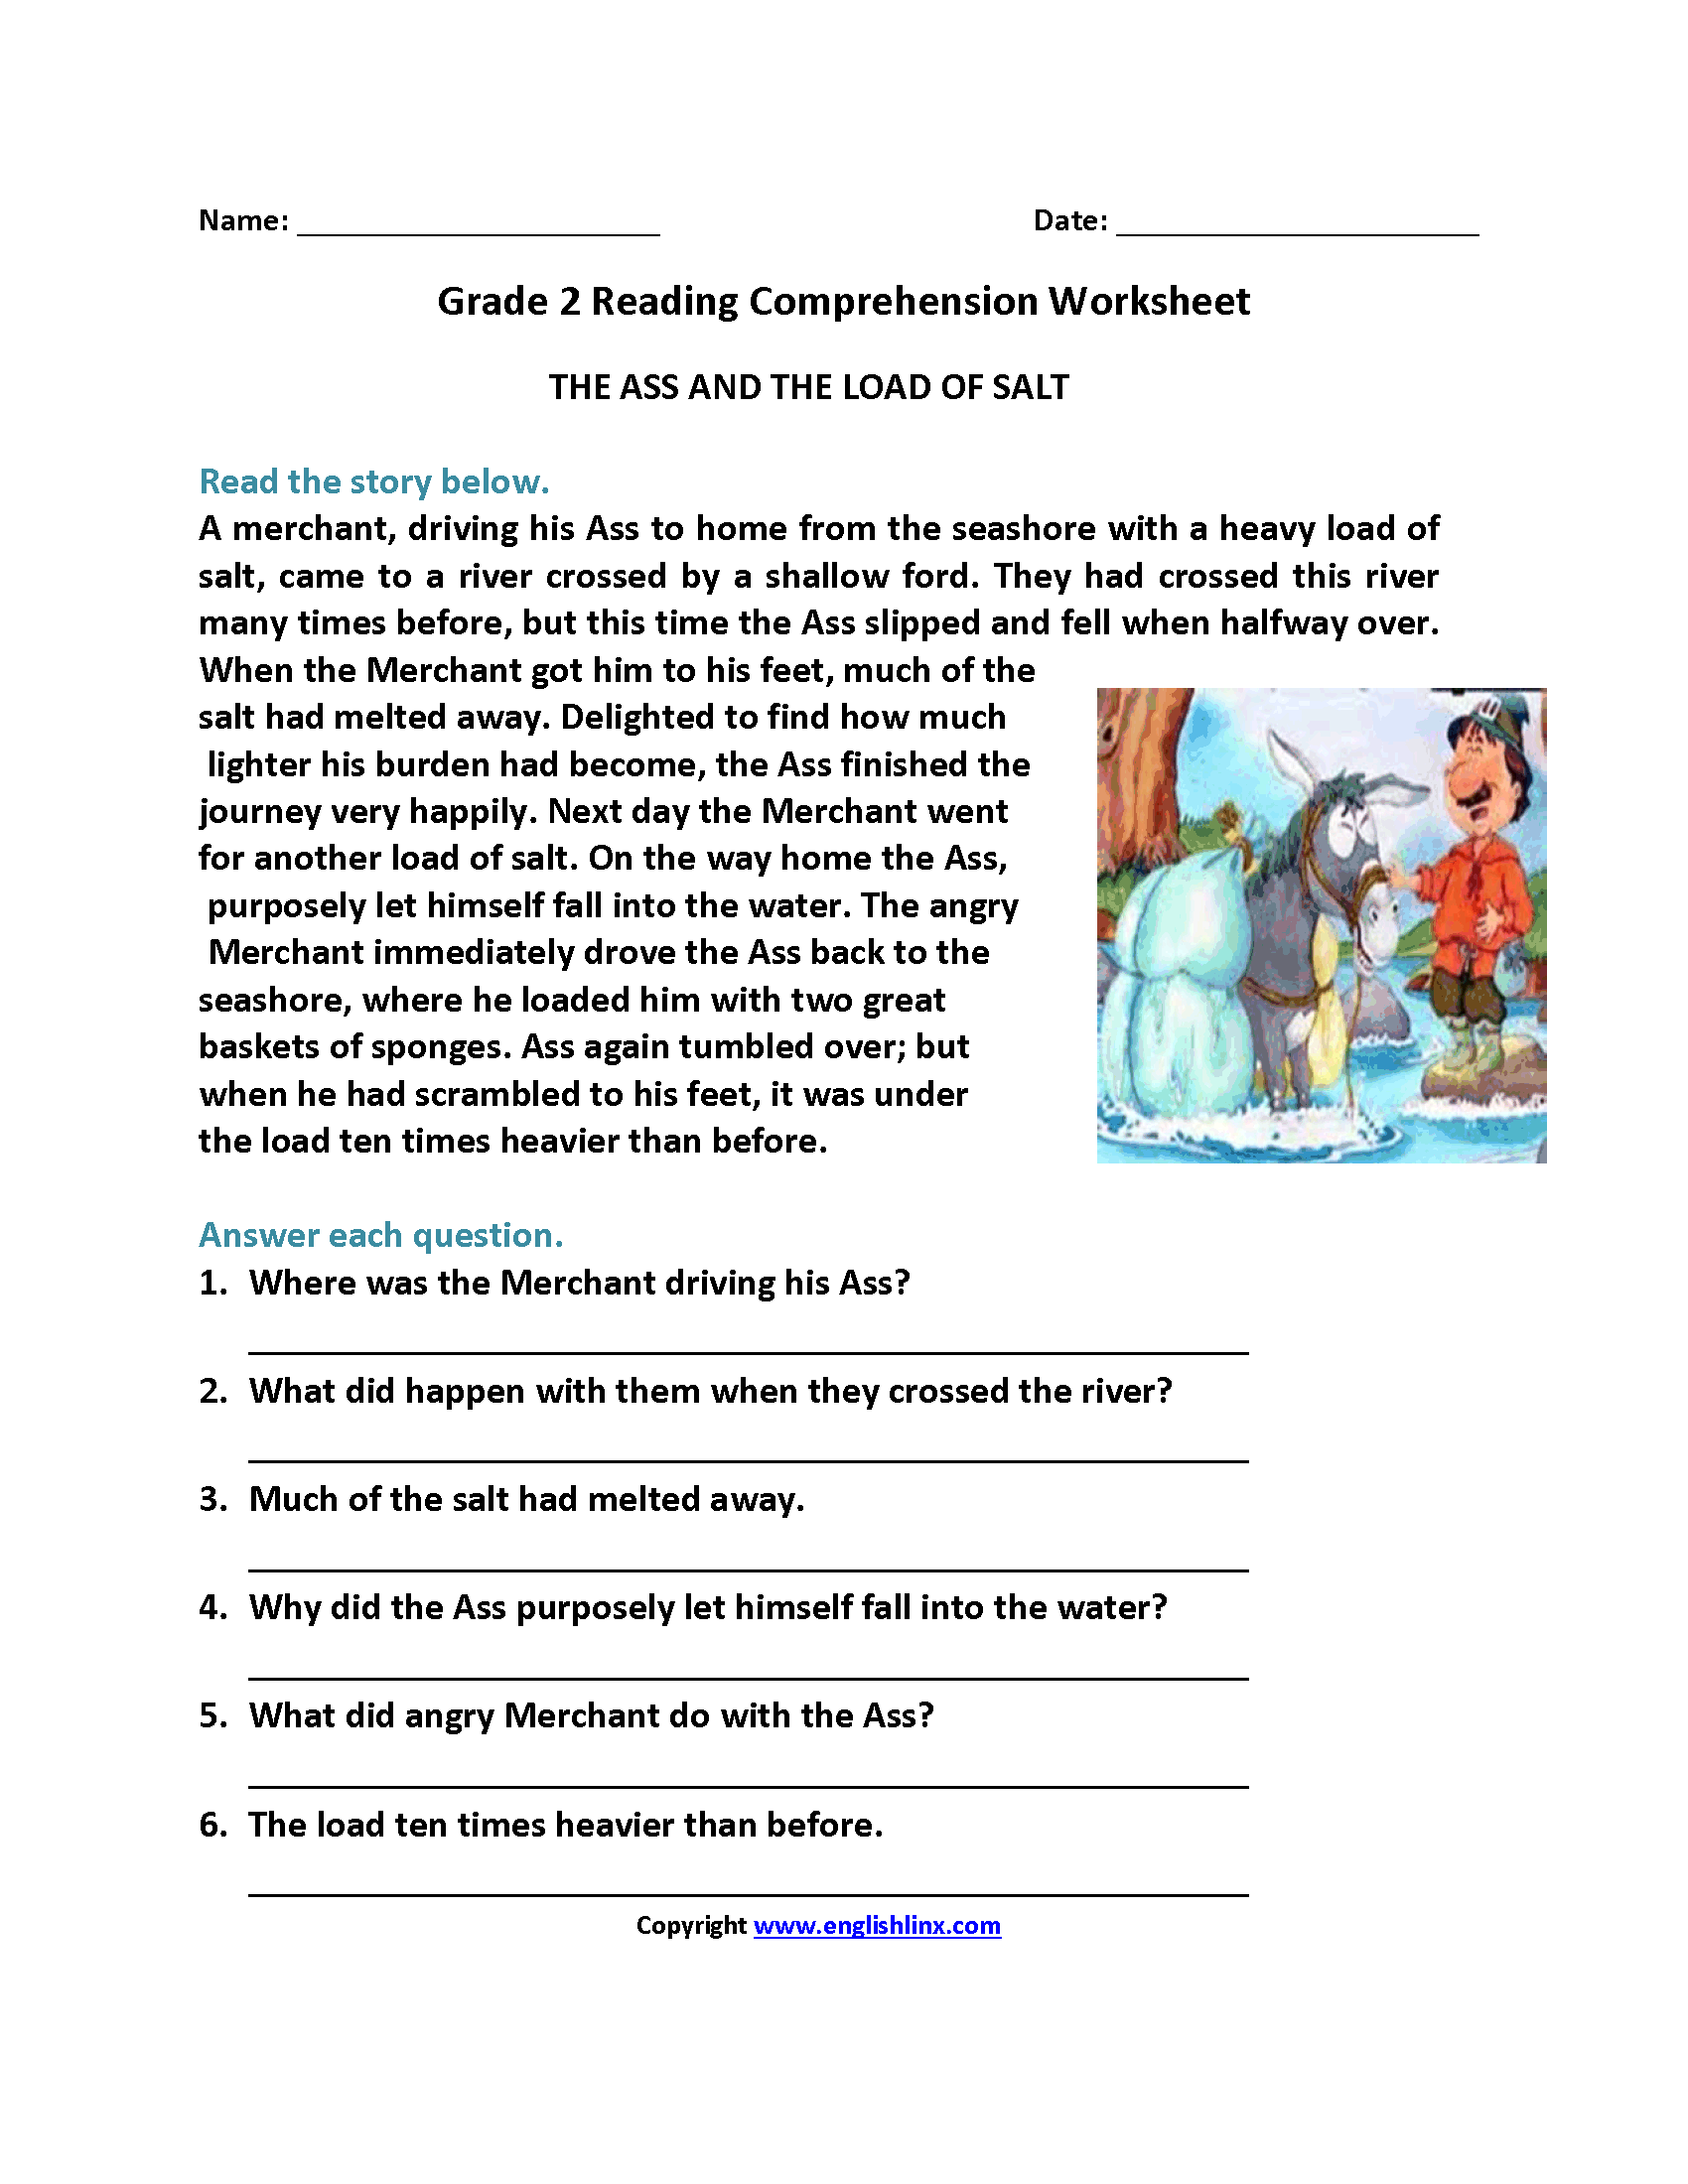 Ass and Load of Salt Second Grade Reading Worksheets | reading ...